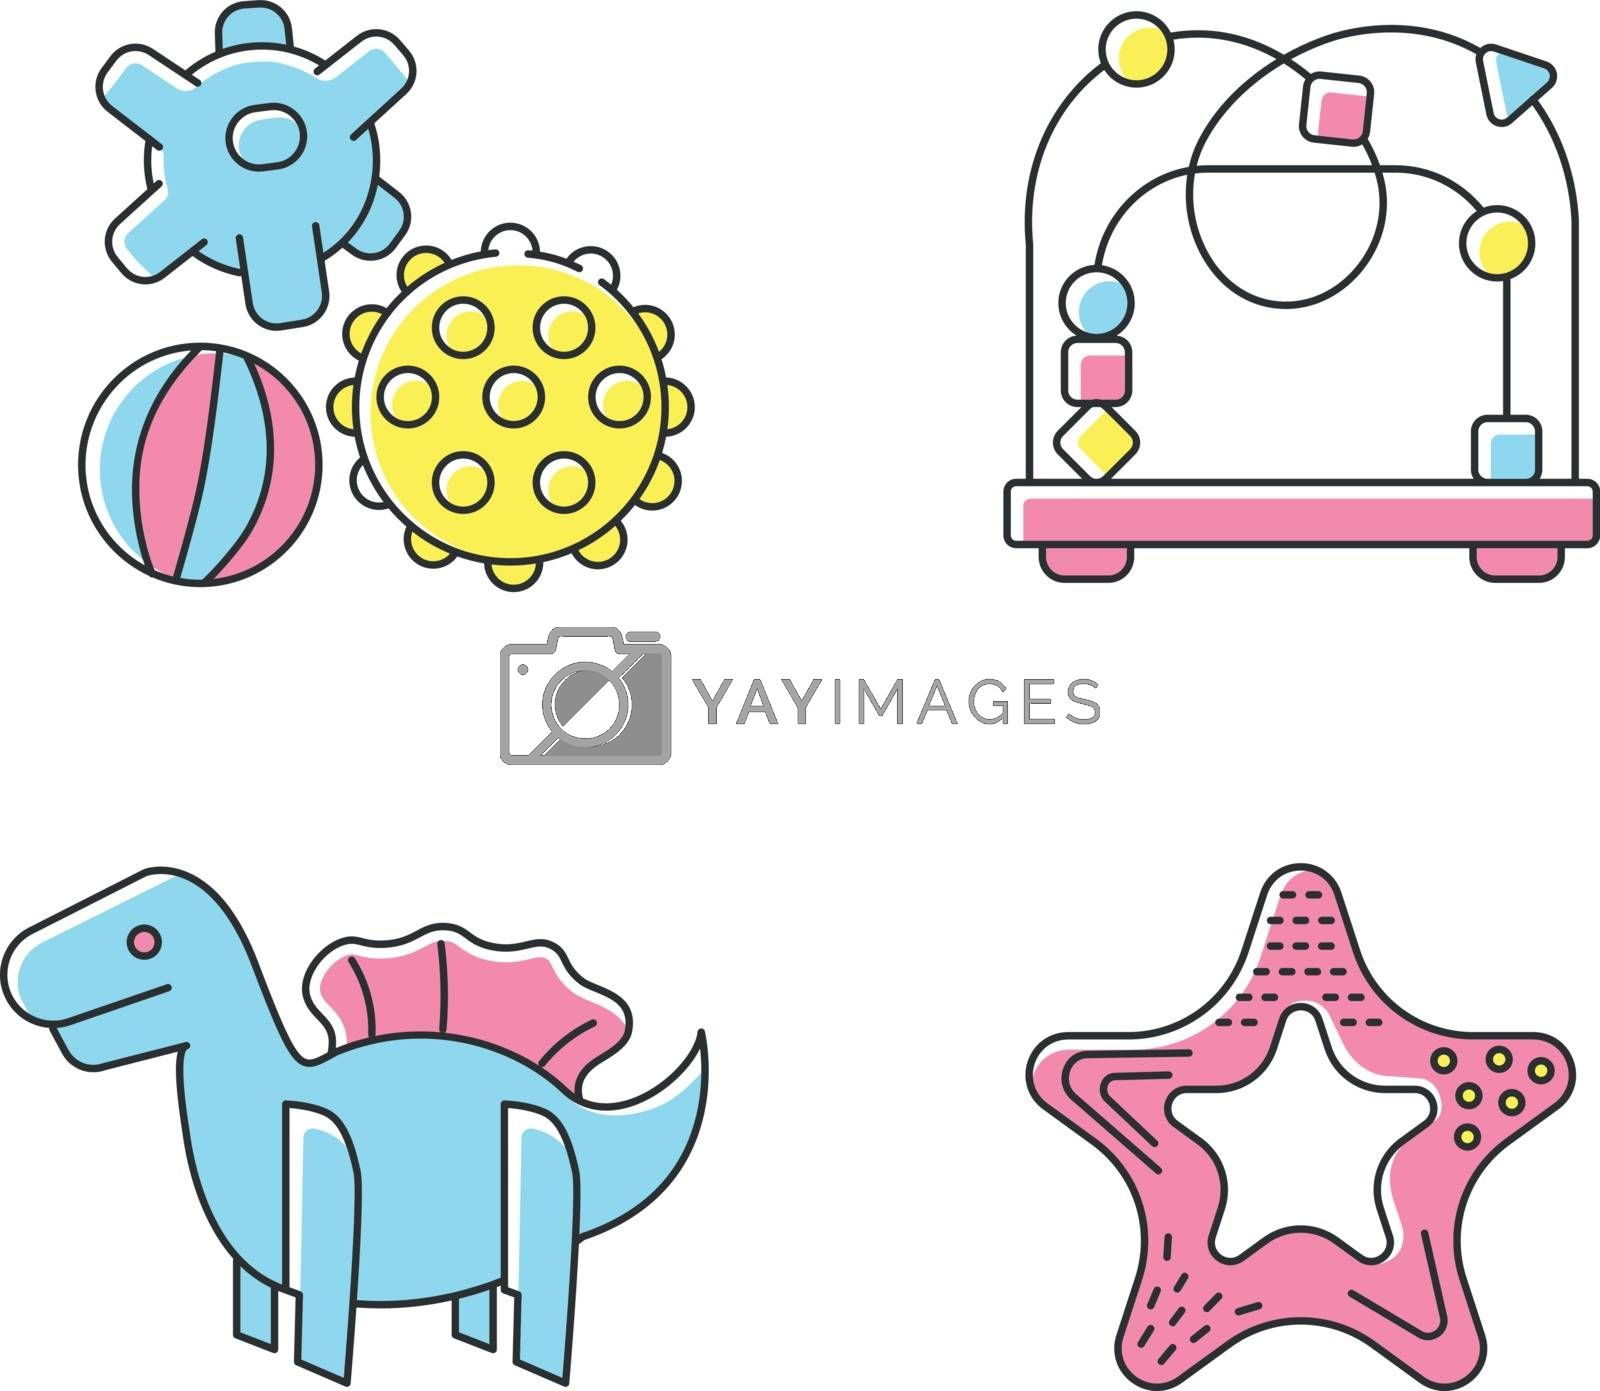 Children sensory toys RGB color icons set. Textured balls and bead maze. Fine and gross motor skills. Early childhood development. Kids amusement ideas. Isolated vector illustrations